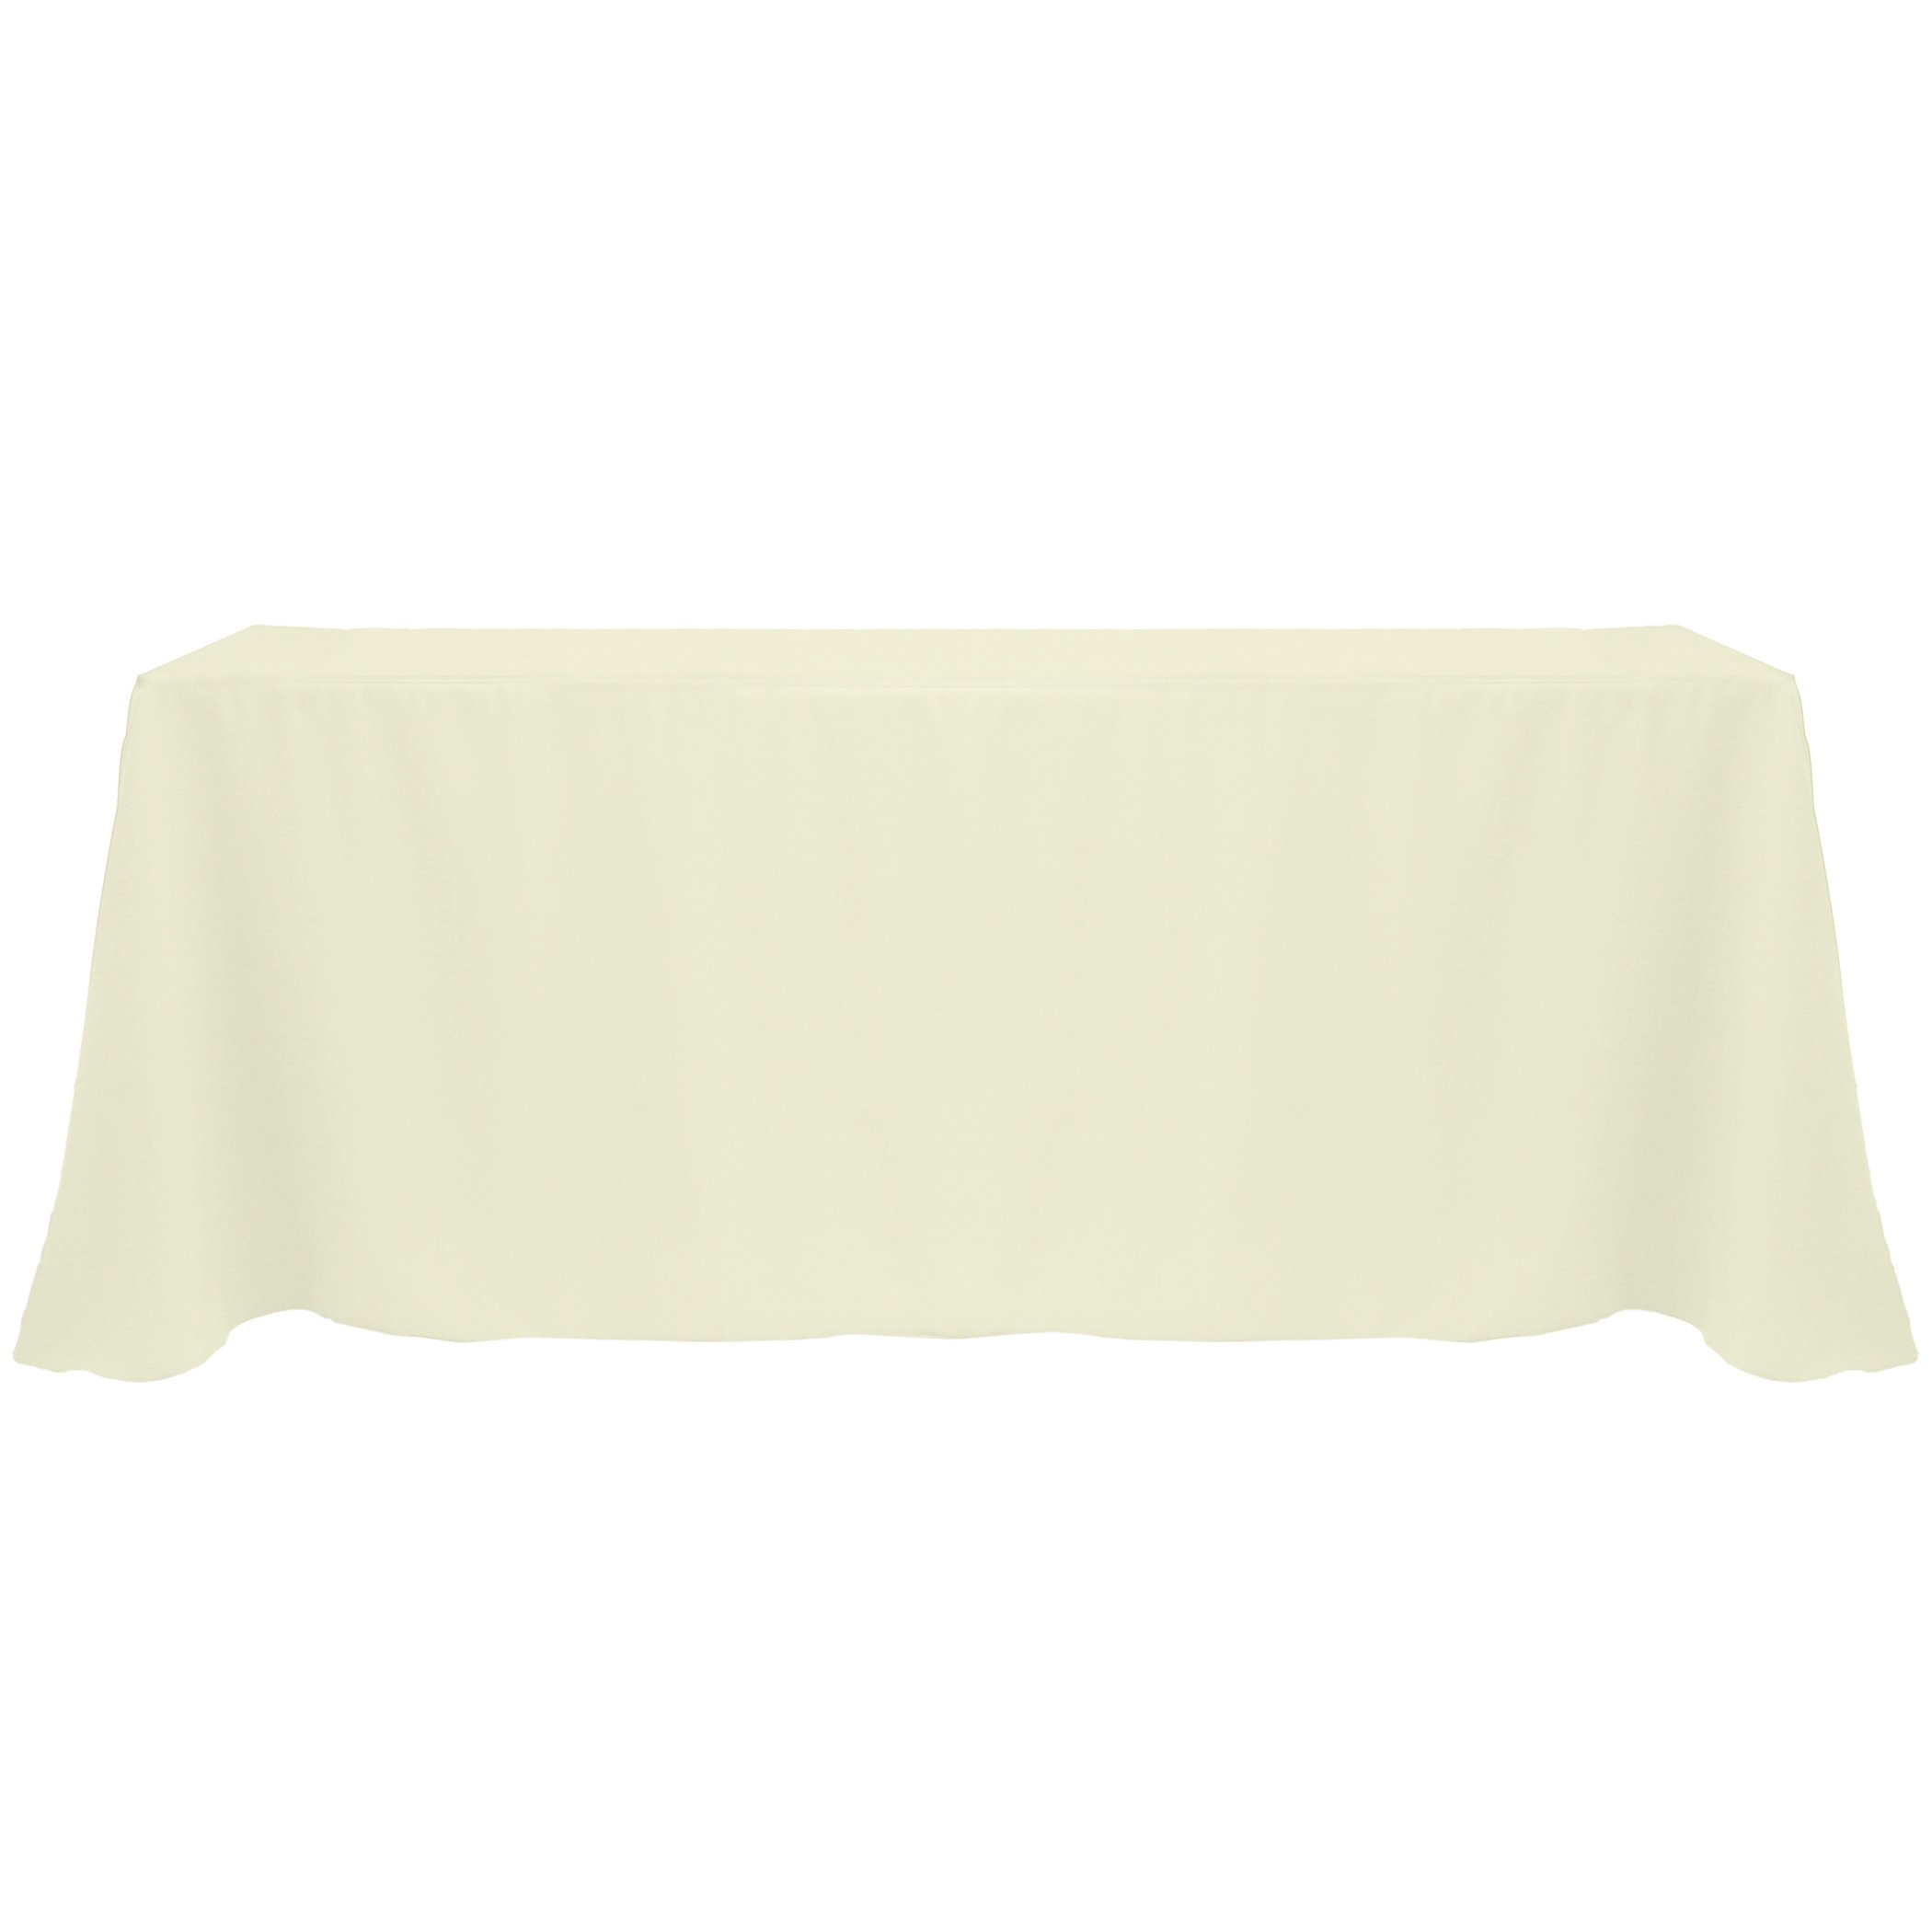 Ultimate Textile (5 Pack) 90 x 132-Inch Rectangular Polyester Linen Tablecloth with Rounded Corners - for Wedding, Restaurant or Banquet use, Ivory Cream by Ultimate Textile (Image #1)